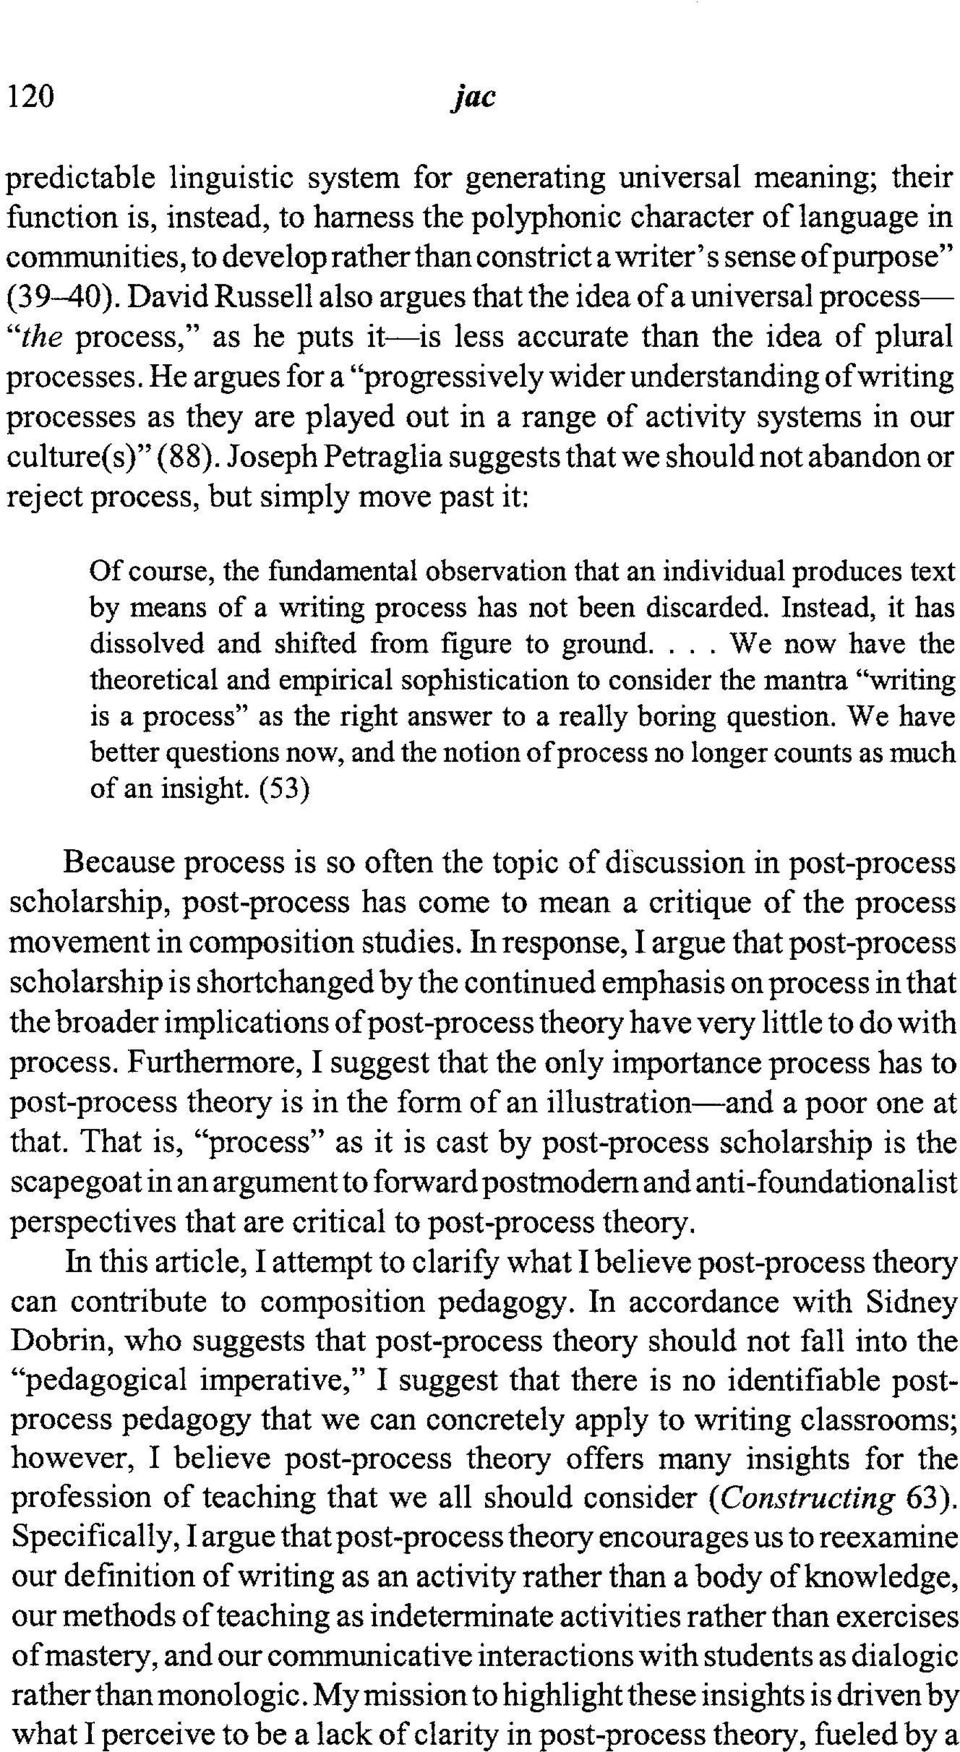 "He argues for a ""progressively wider understanding ofwriting processes as they are played out in a range of activity systems in our culture( s)"" (88)."